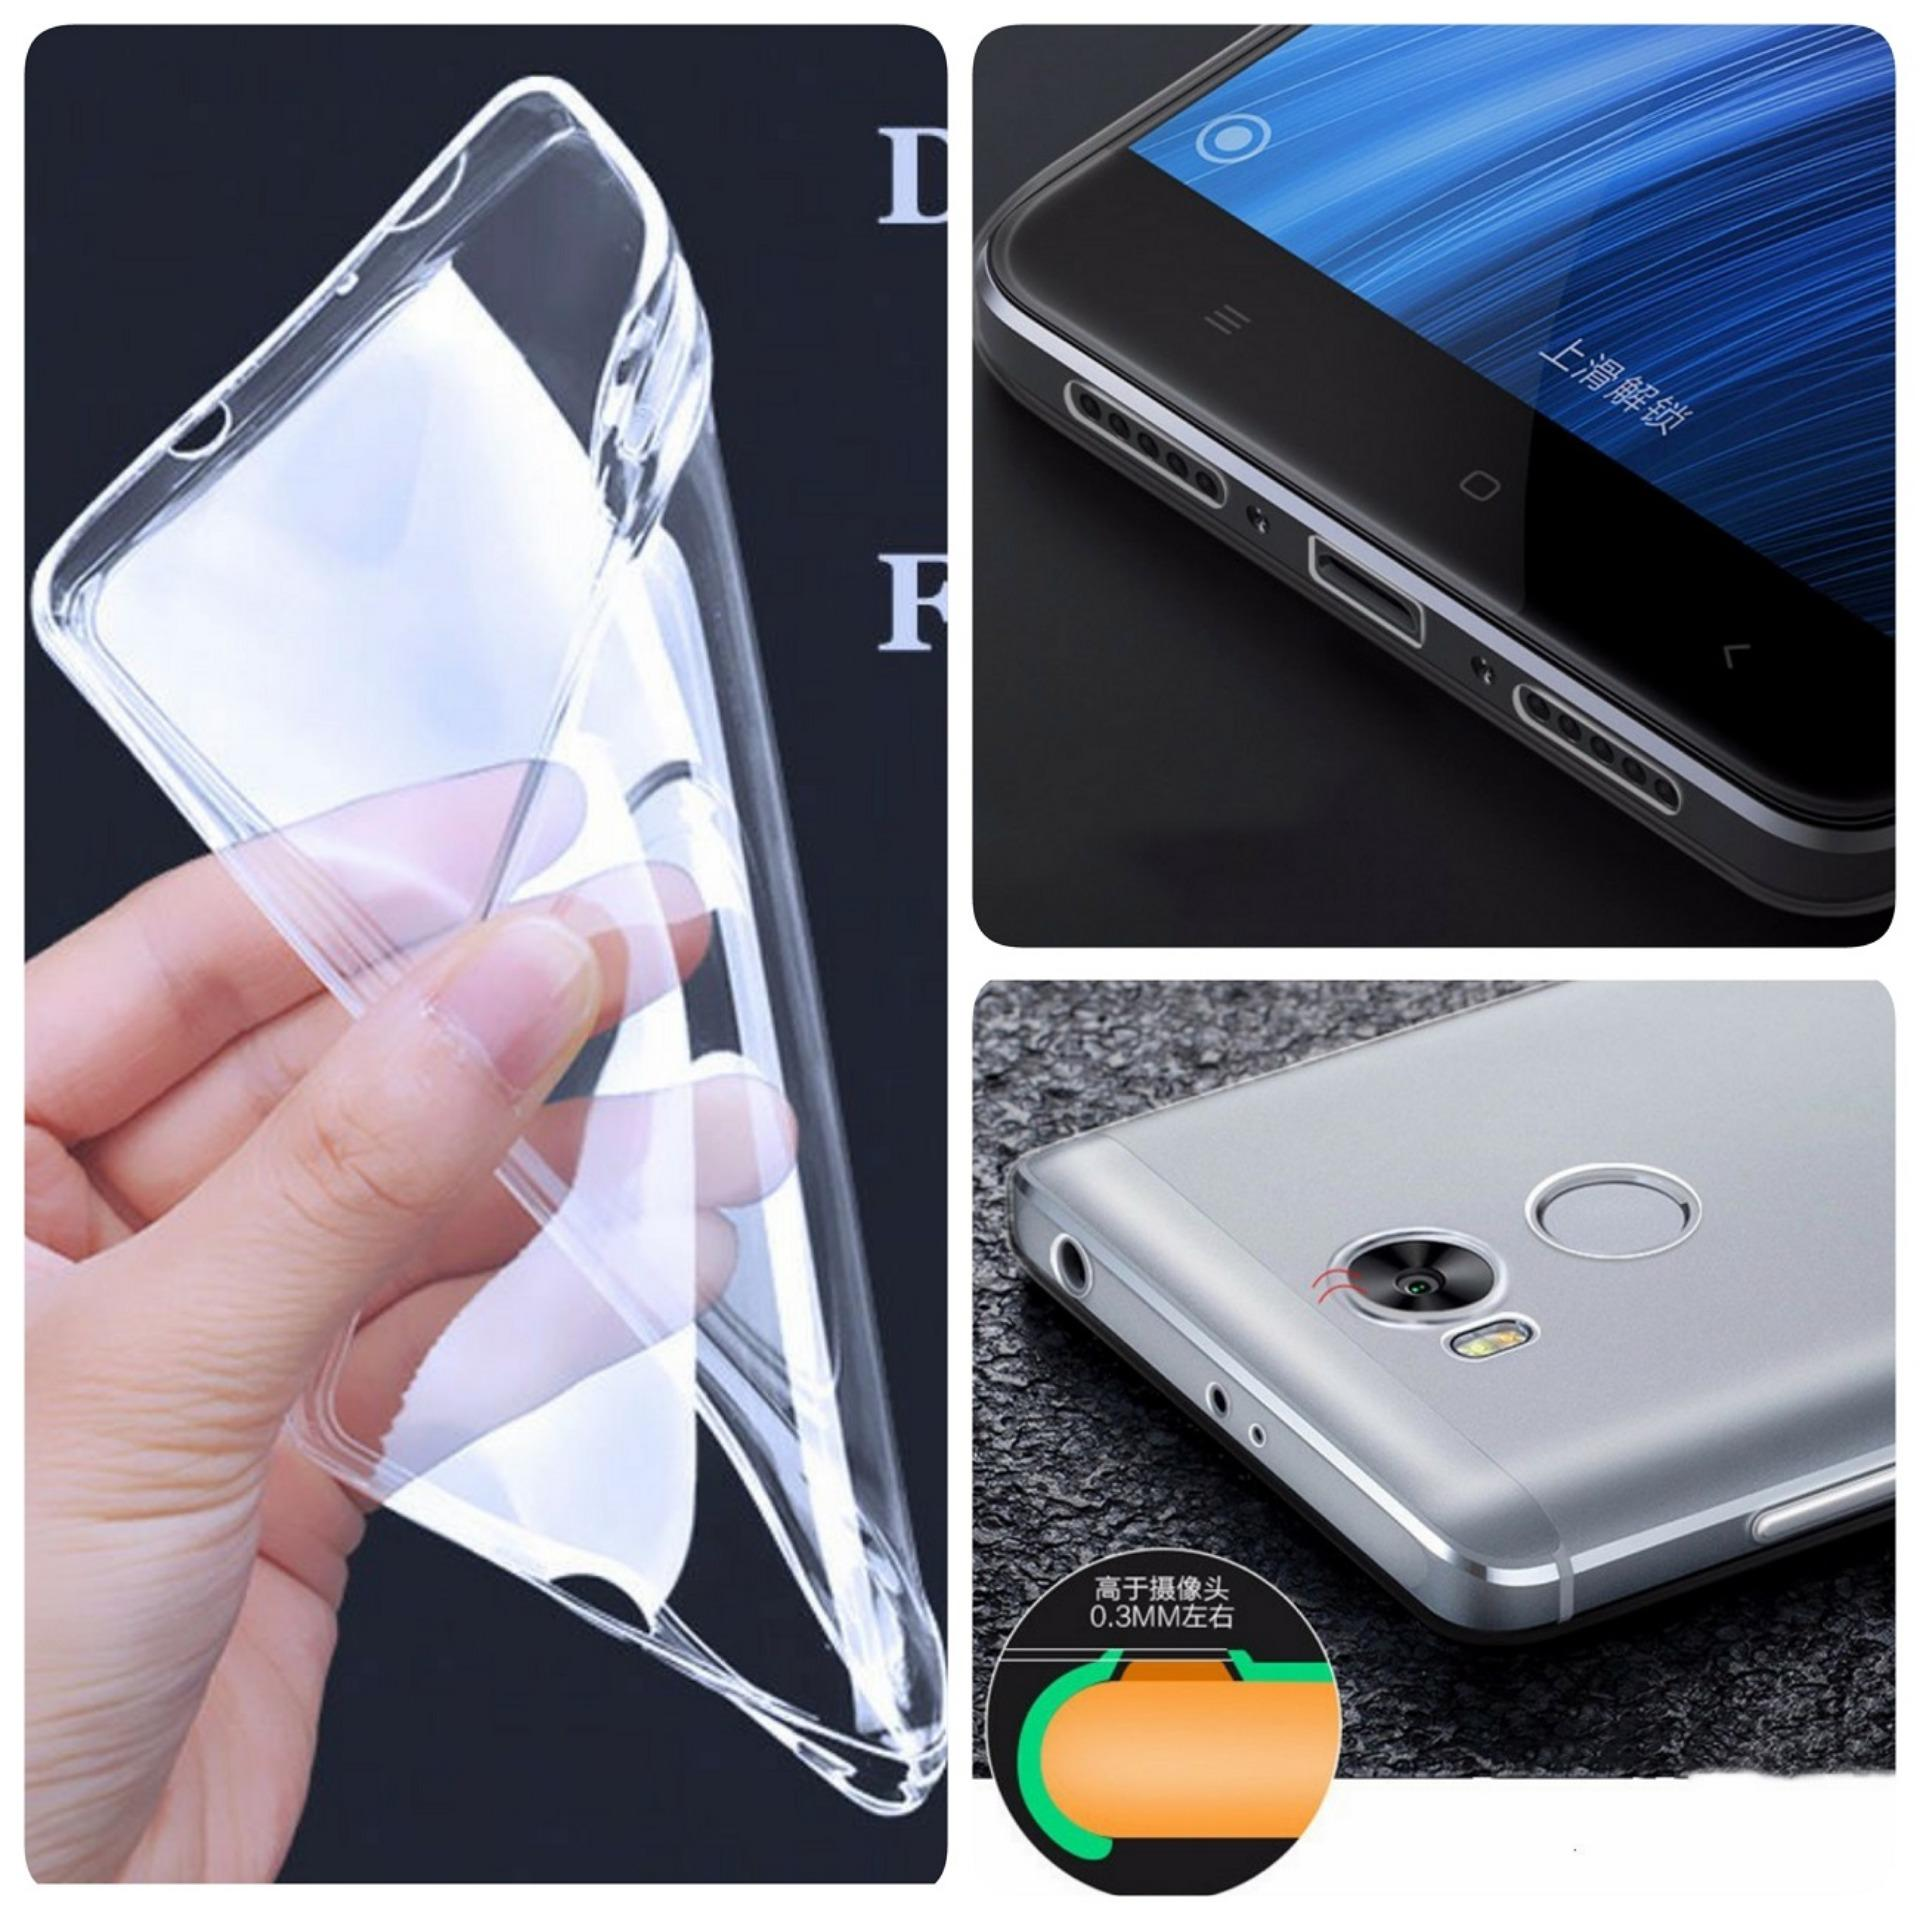 Softcase Jelly Ultrathin For Xiaomi Redmi 4 Prime Aircase Hitam +Free Tempered Glass .